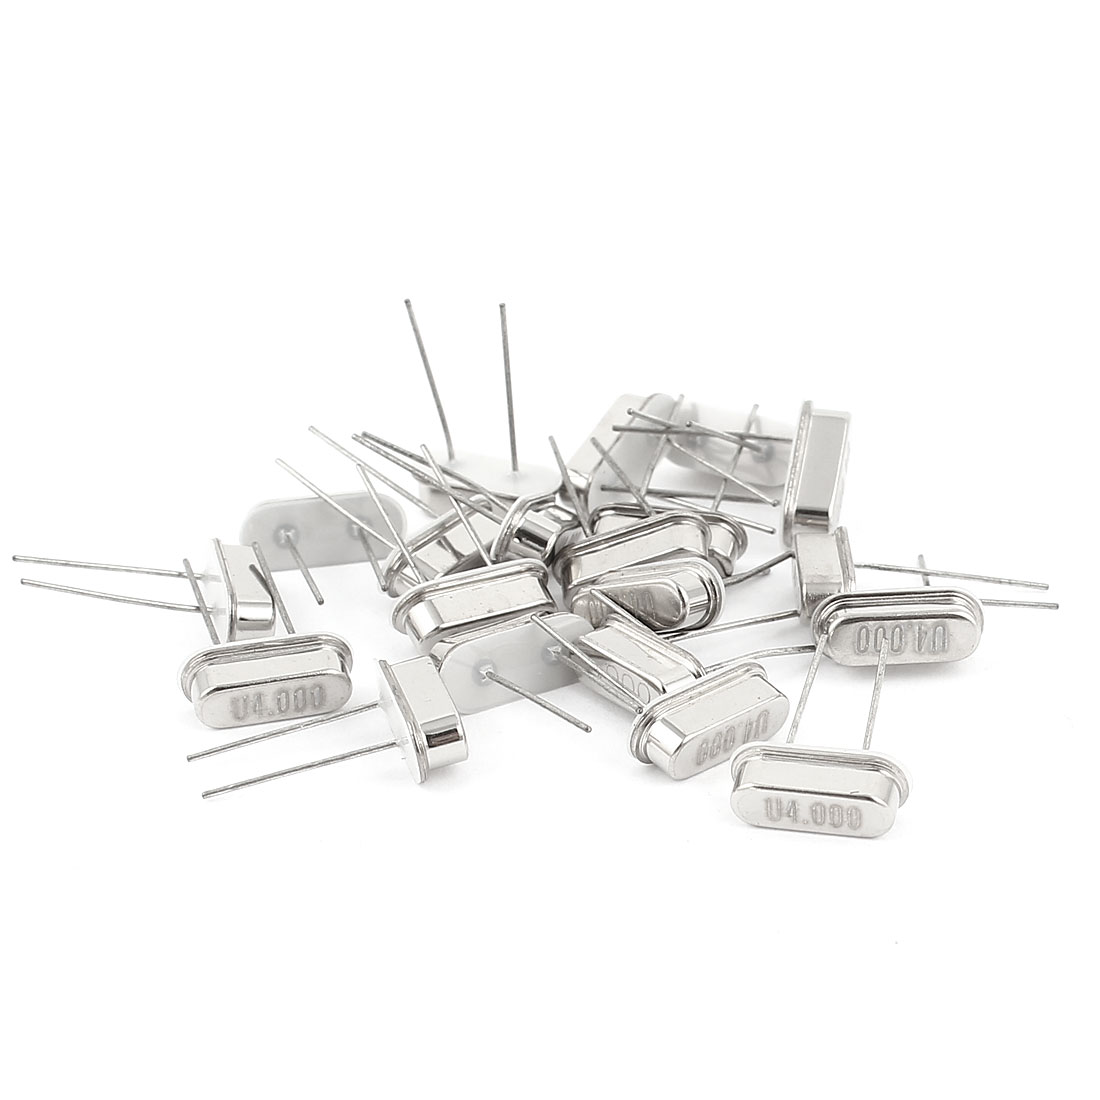 20 Pcs Low Profile 4MHZ 4.000MHZ DIP Quartz Crystal Oscillator HC-49S Replacement